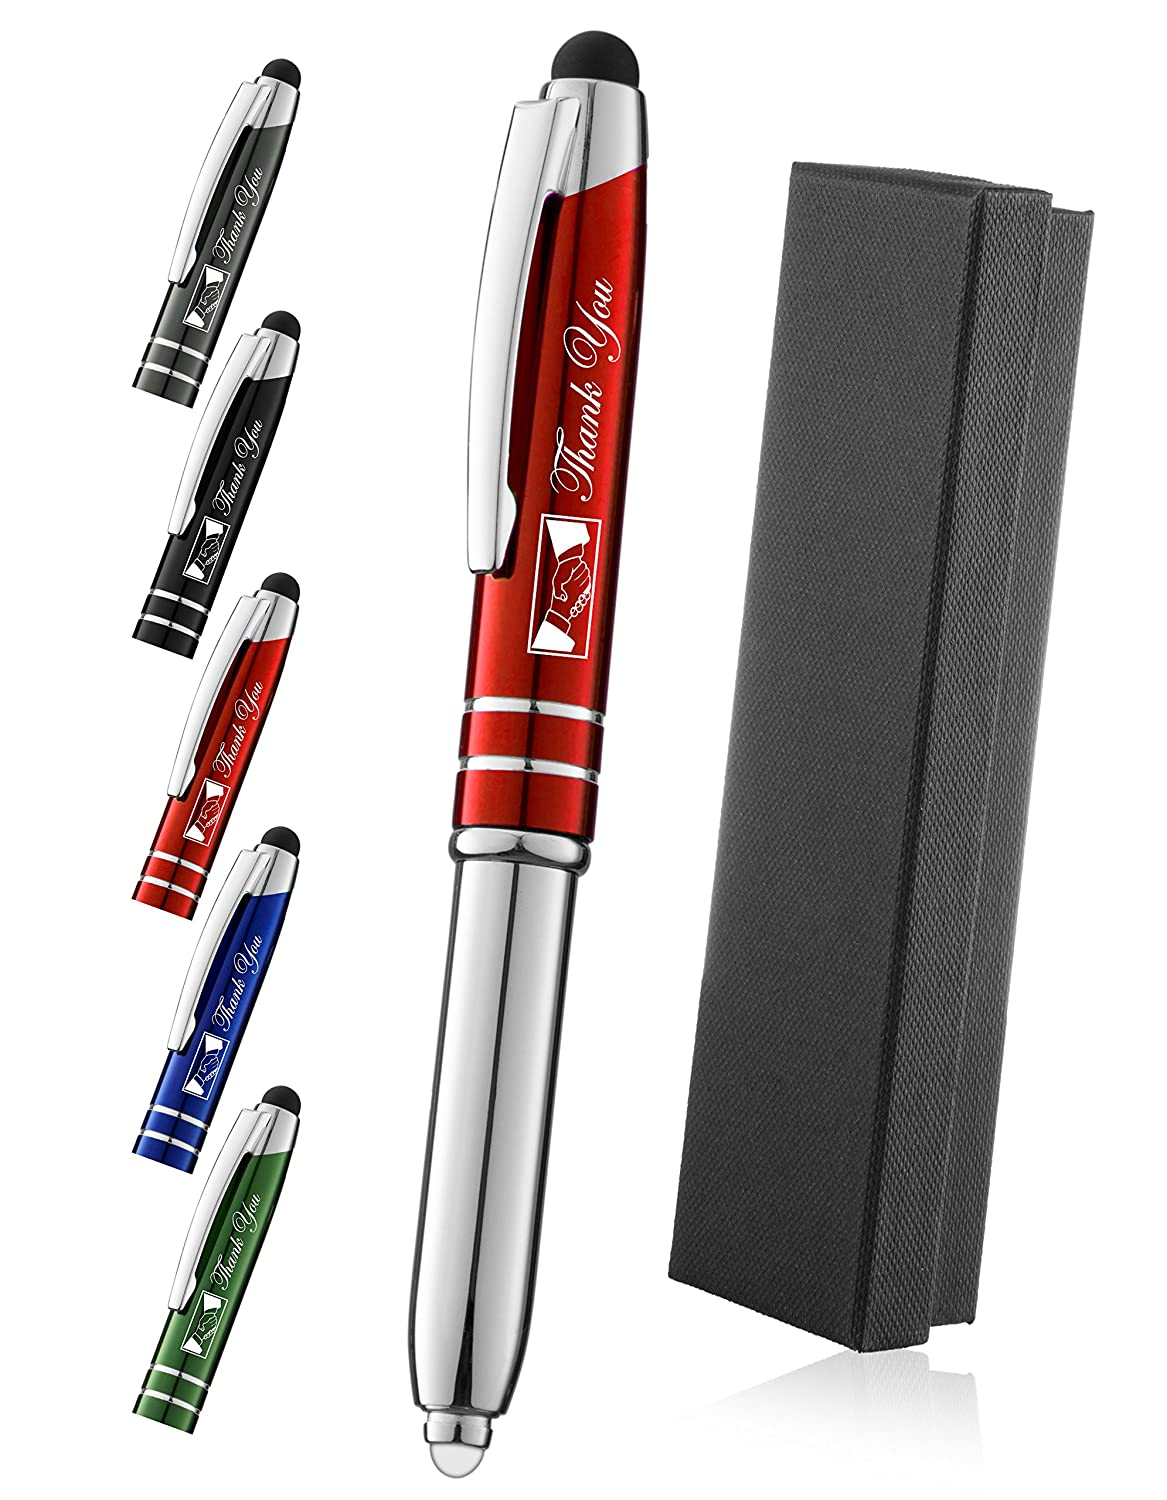 Stylus Pen for Touch Screens with LED Flashlight and Pen Gunmetal Stylus WizGear/™ 3-in-1 Stylus Pen